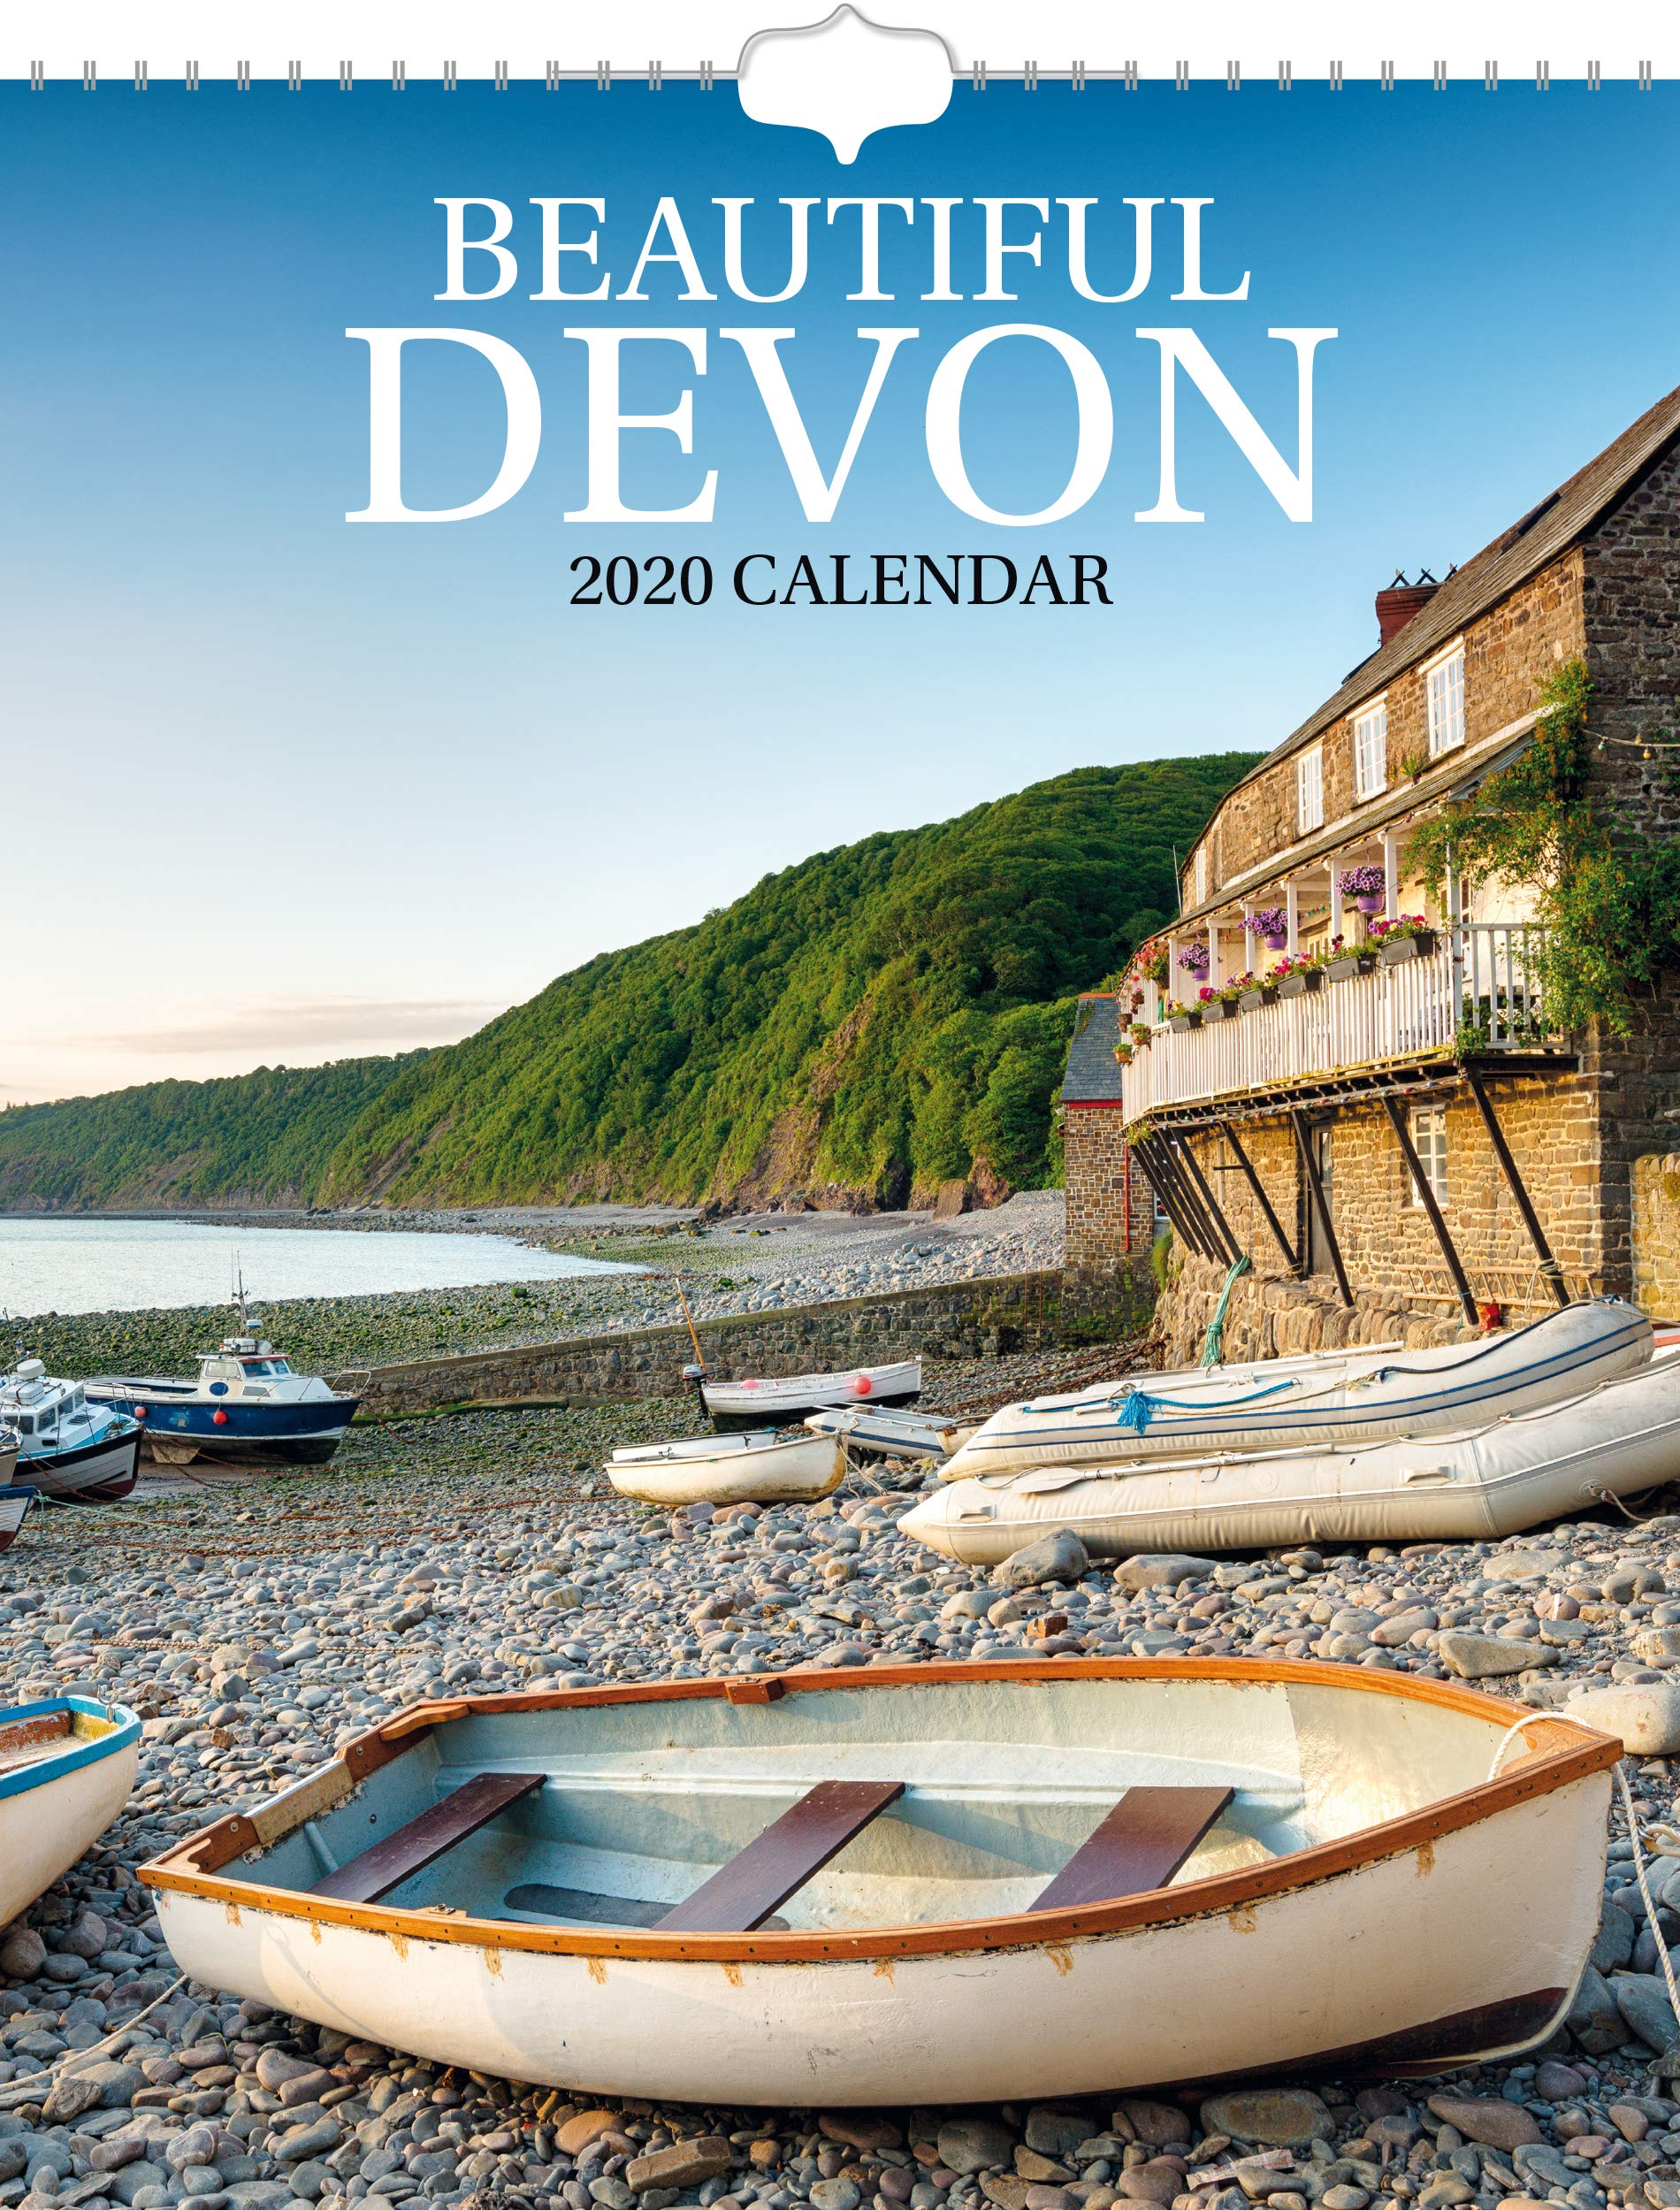 Postal Calendar 2020 Beautiful Devon 2020 Wall Calendar   Postal Envelope Included